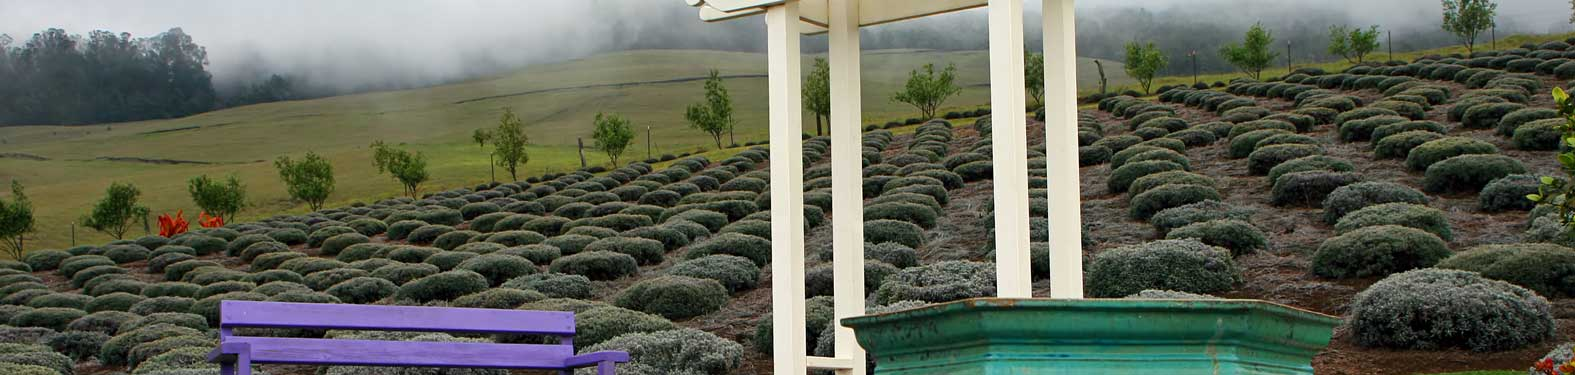 How To Enjoy The Maui Lavender Farm